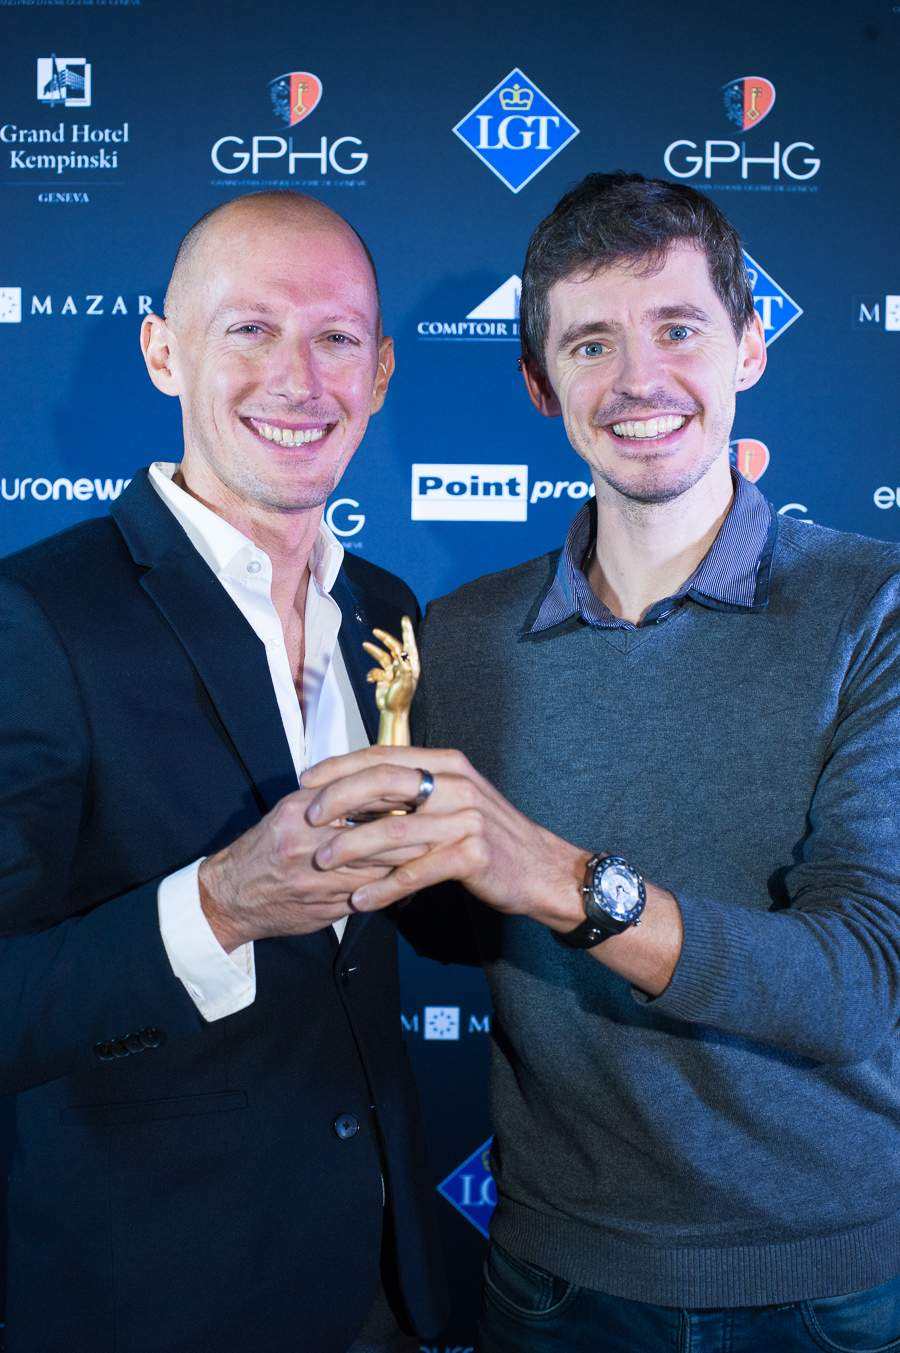 Marco Borraccino,Co-founder and CEO of Singer Reimagined, winner of the Chronograph Watch Prize 2018 and Nicolas Wiederrecht, Co-director Agenhor SA